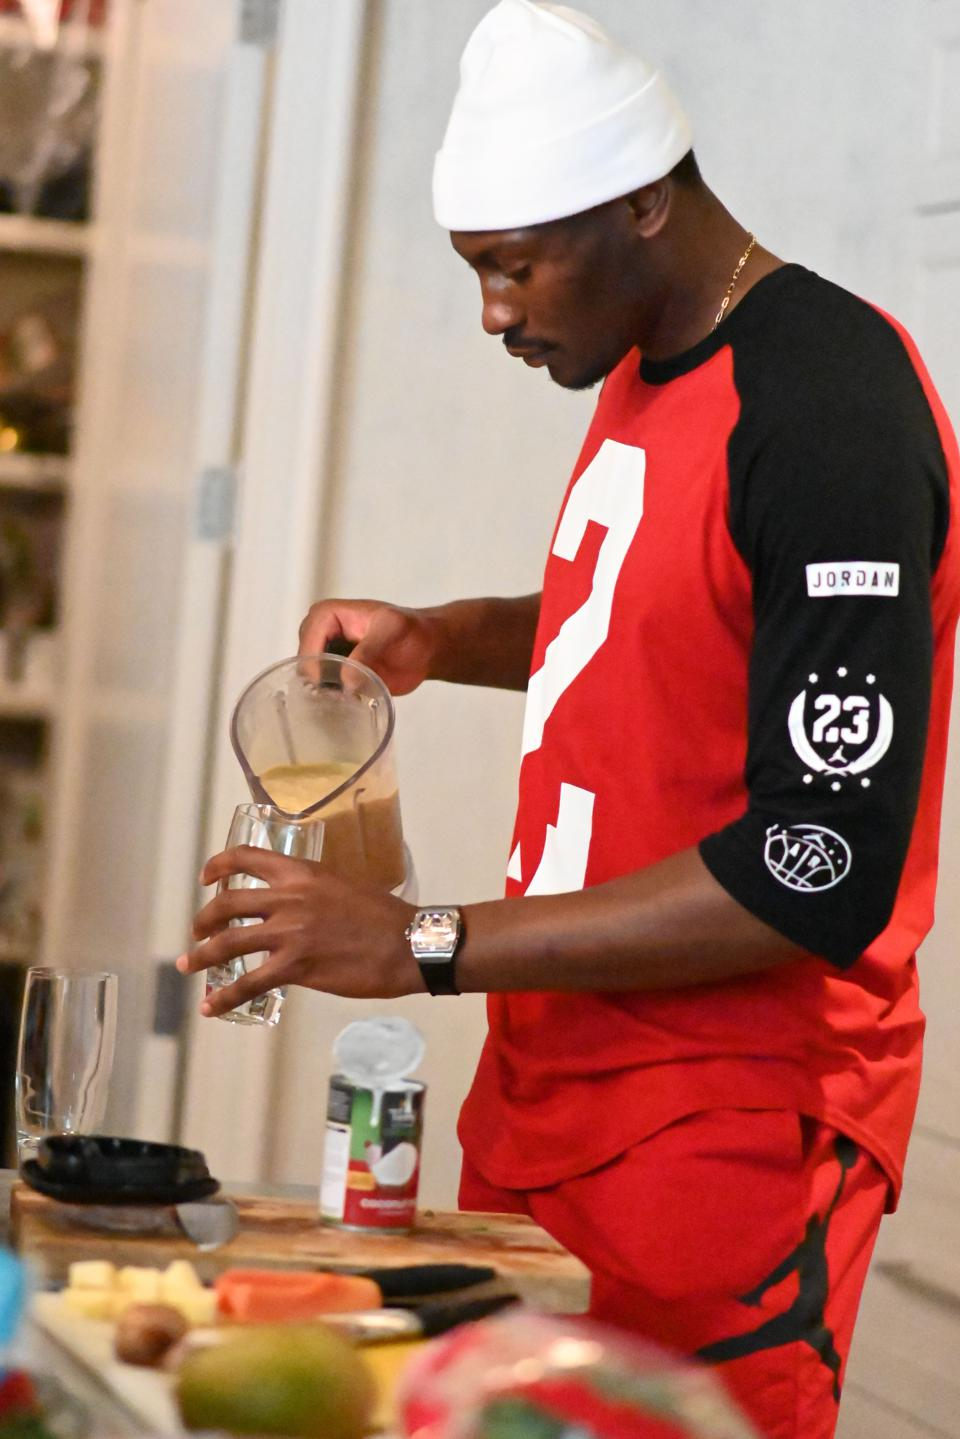 Bismack in the kitchen making a smoothie. Image courtesy of Bismack Biyombo / EAG Sports Management